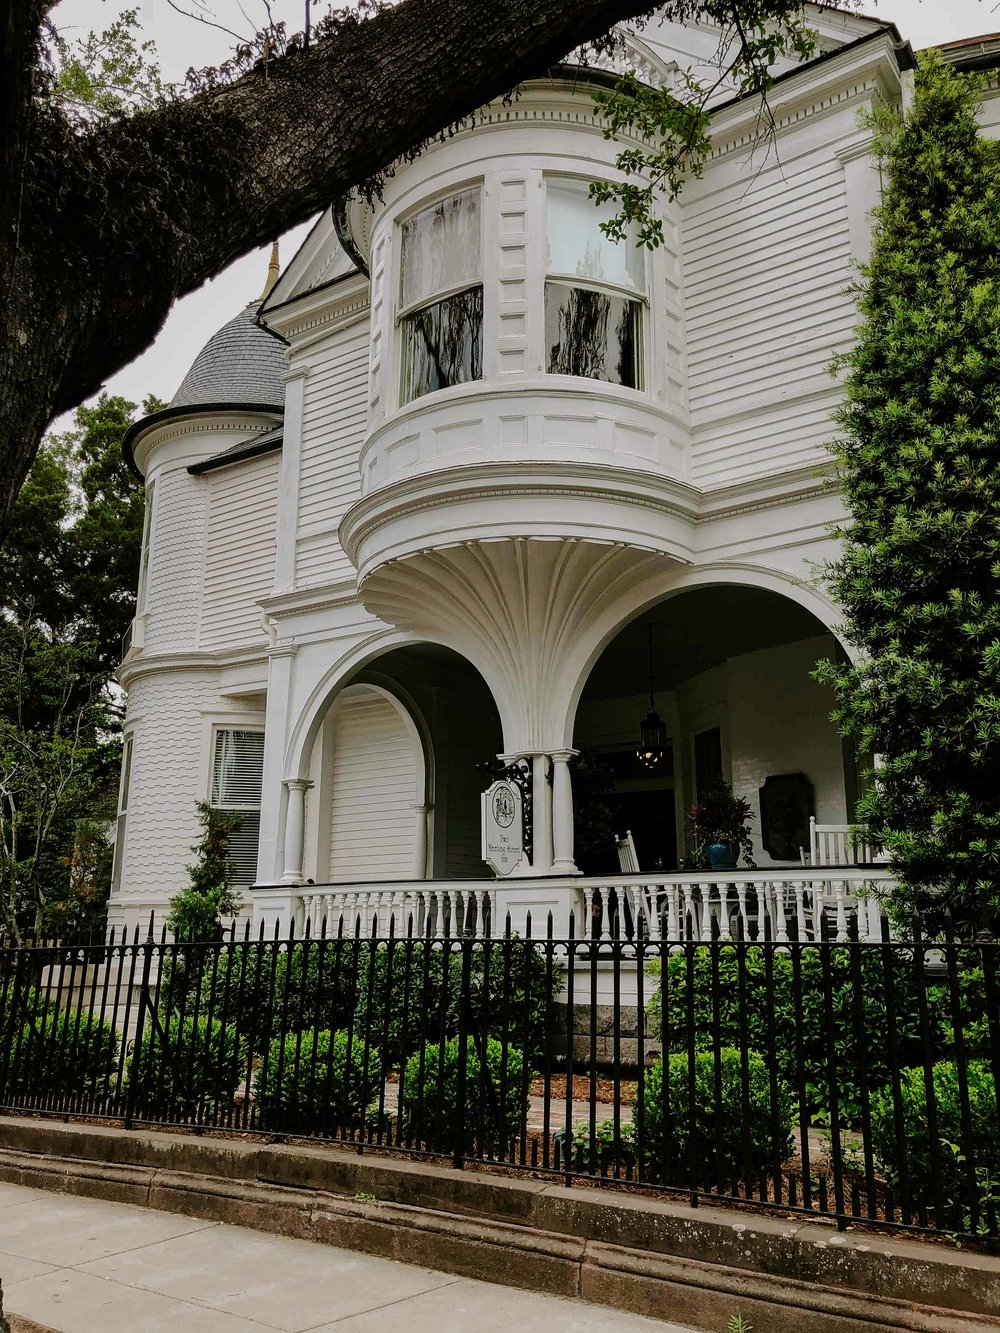 charleston-sc-city-guide-what-to-do-and-see-34.jpg